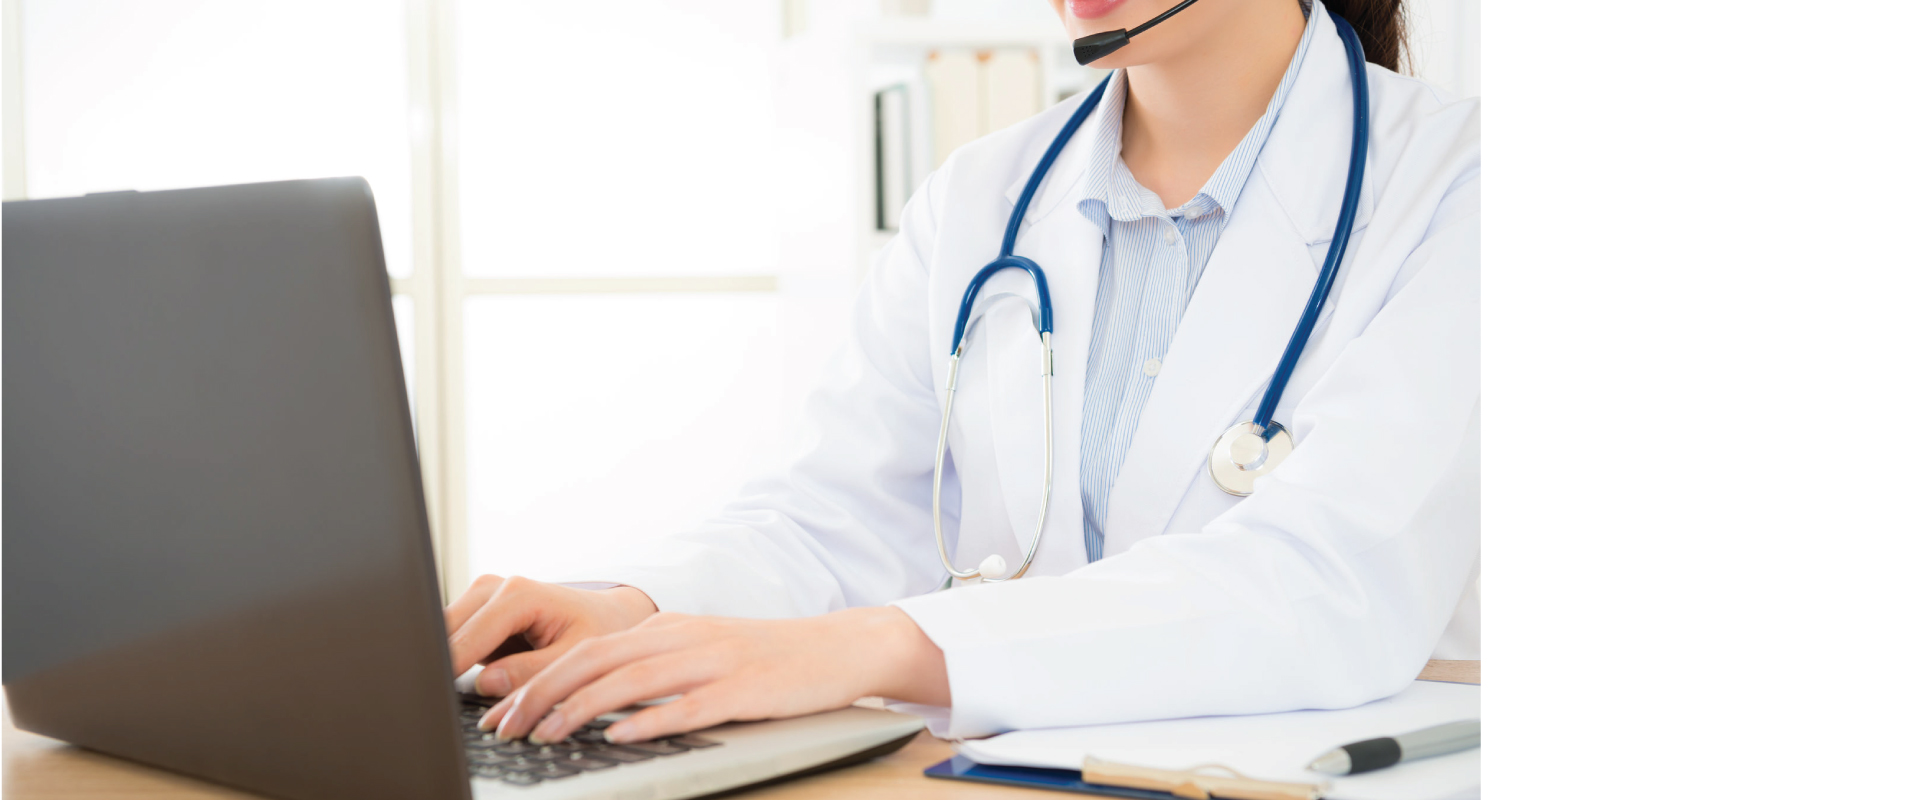 Telemedicine doctors are coming soon to MCI.